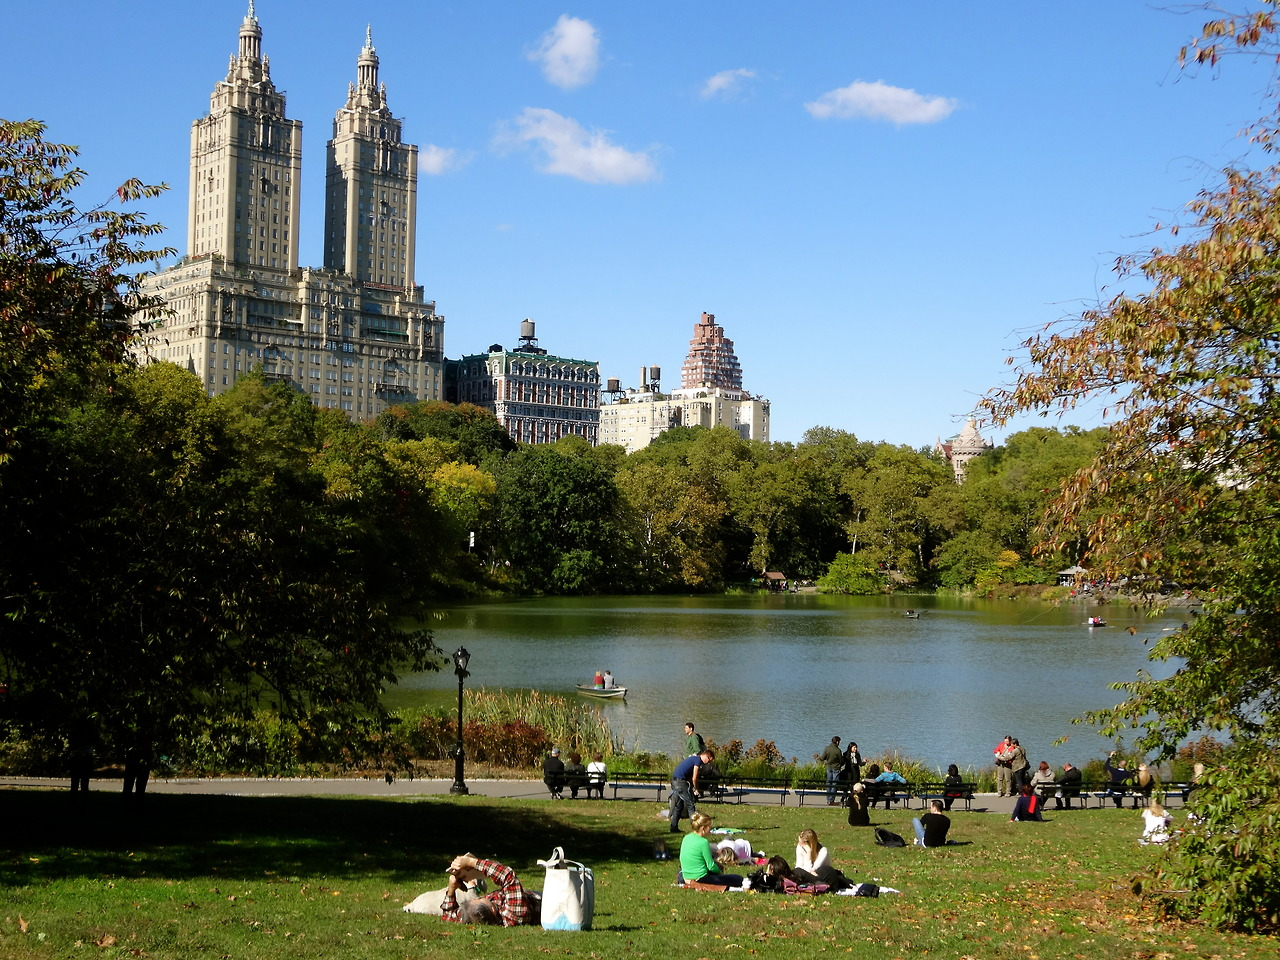 A view of the San Remo Apartments, the building where Robert Wilson lived seen here from Central Park, New York